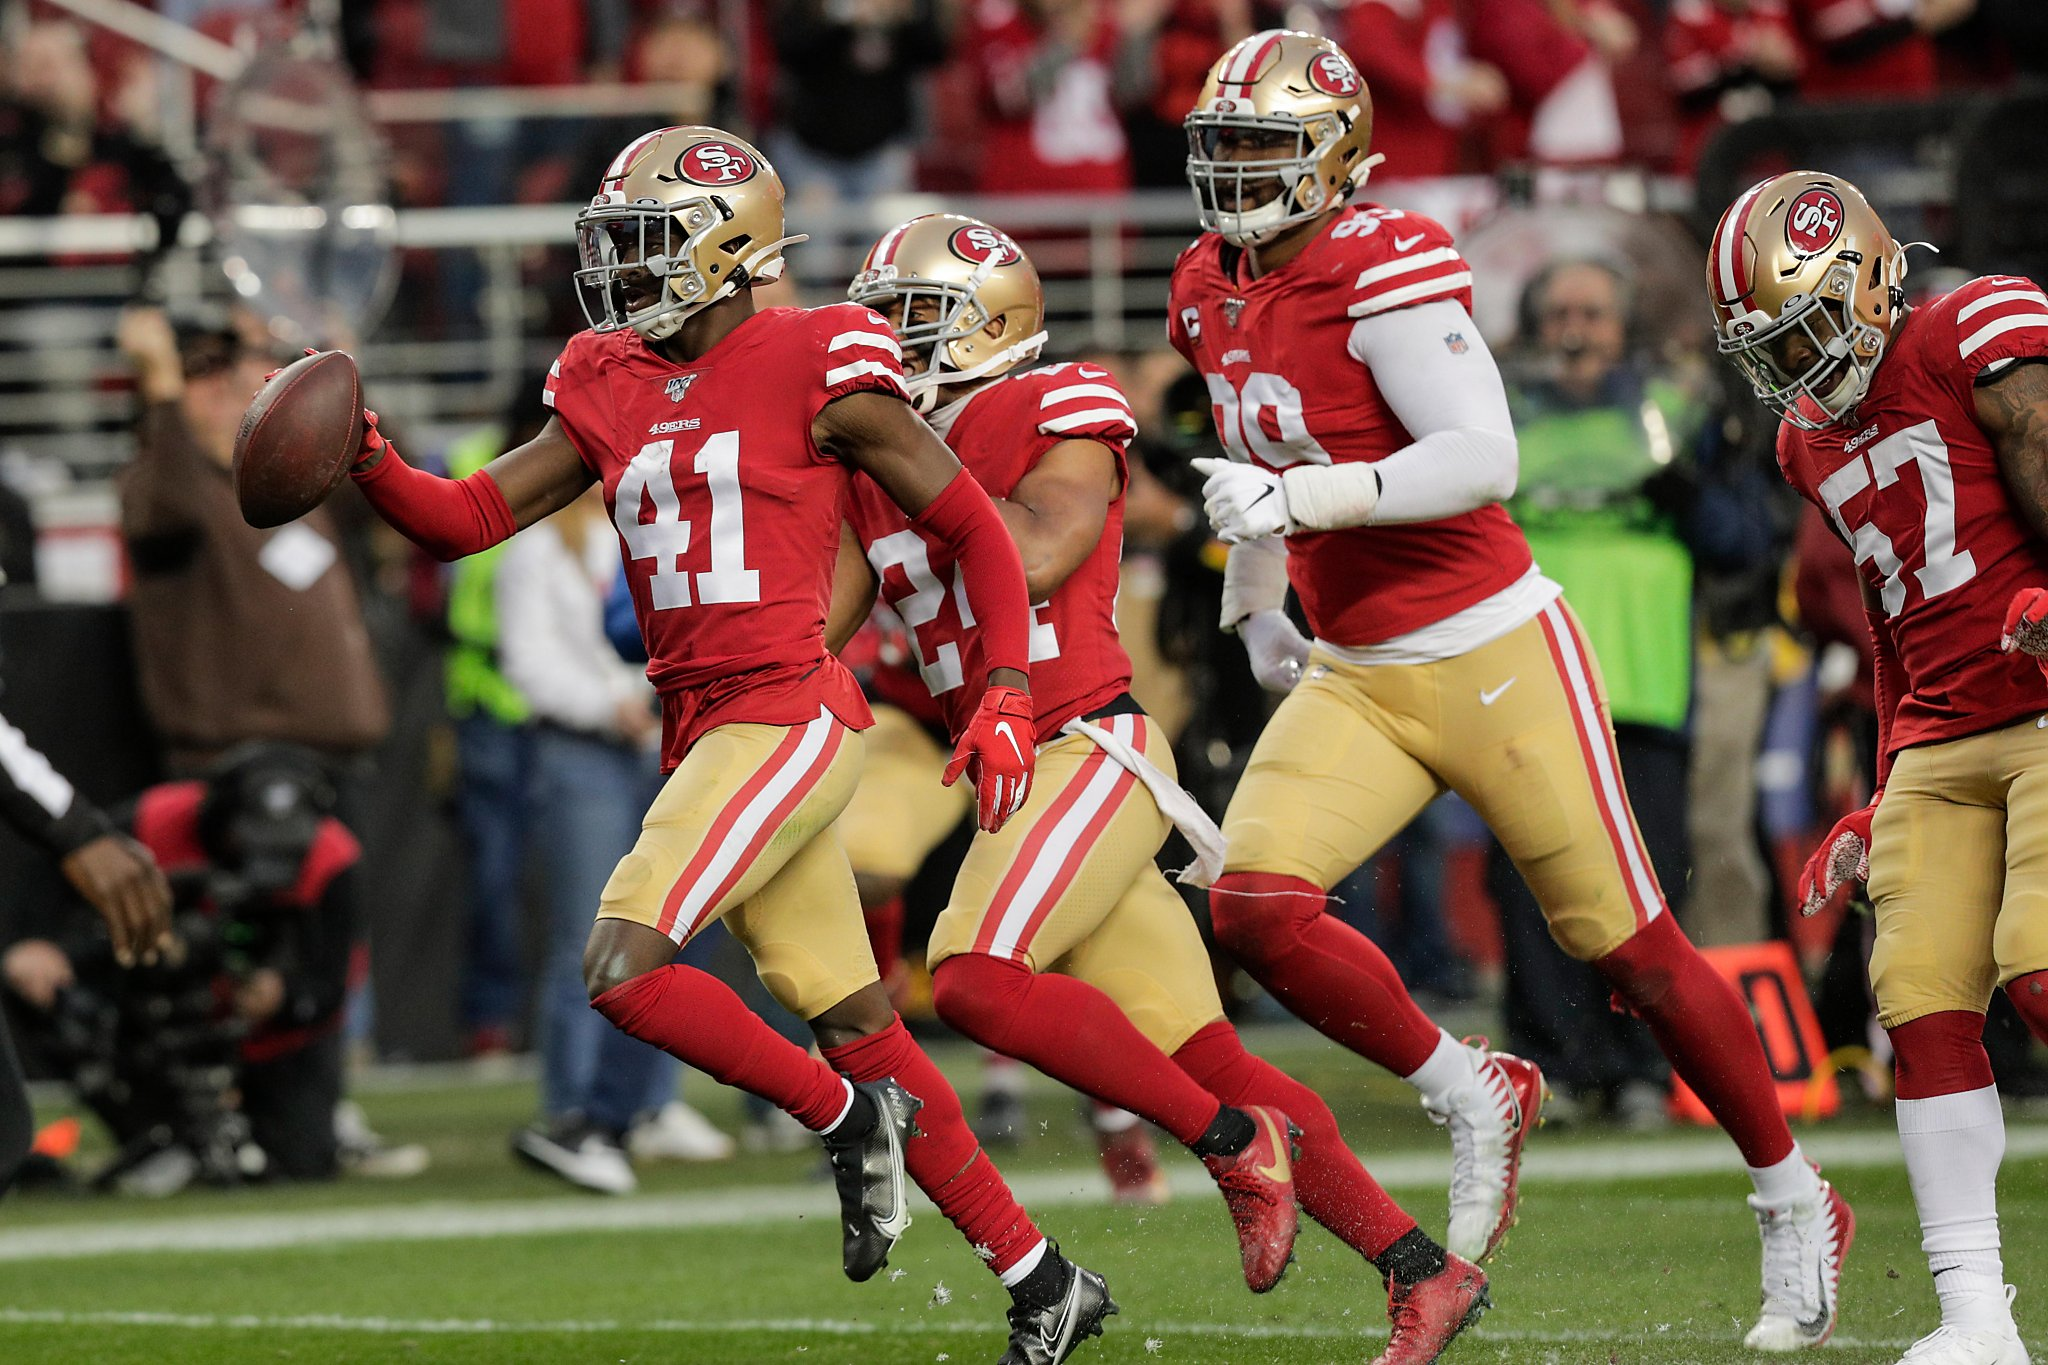 49ers vs. Packers NFC title game live updates: Mostert's historic day leads 49ers past Packers and into Super Bowl - SFChronicle.com